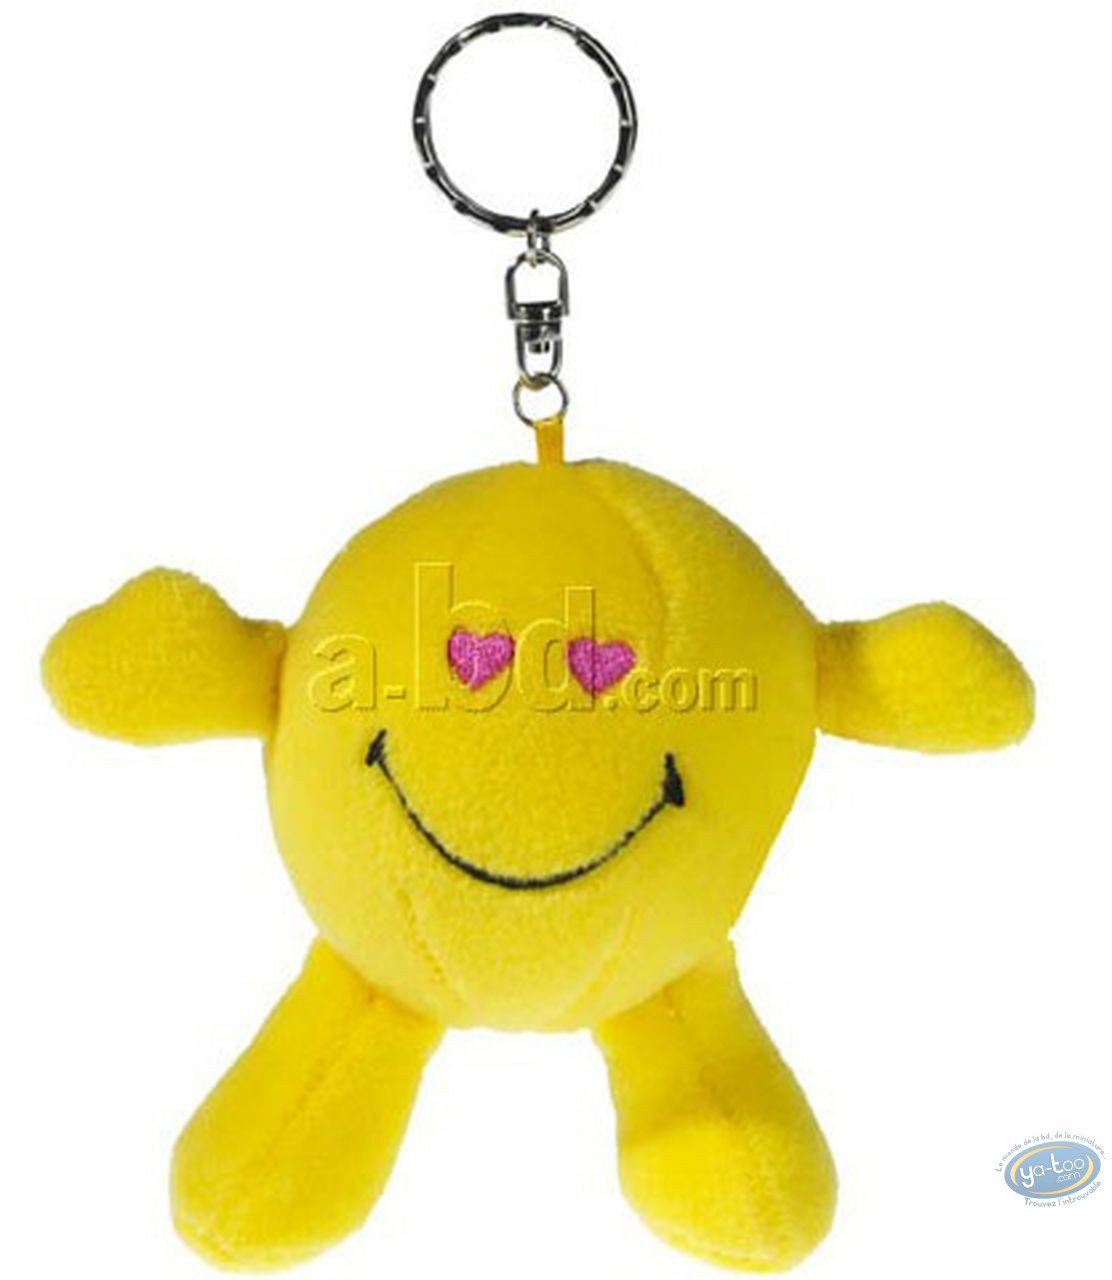 Keyring, Smiley : Plush Key ring, Smiley heart